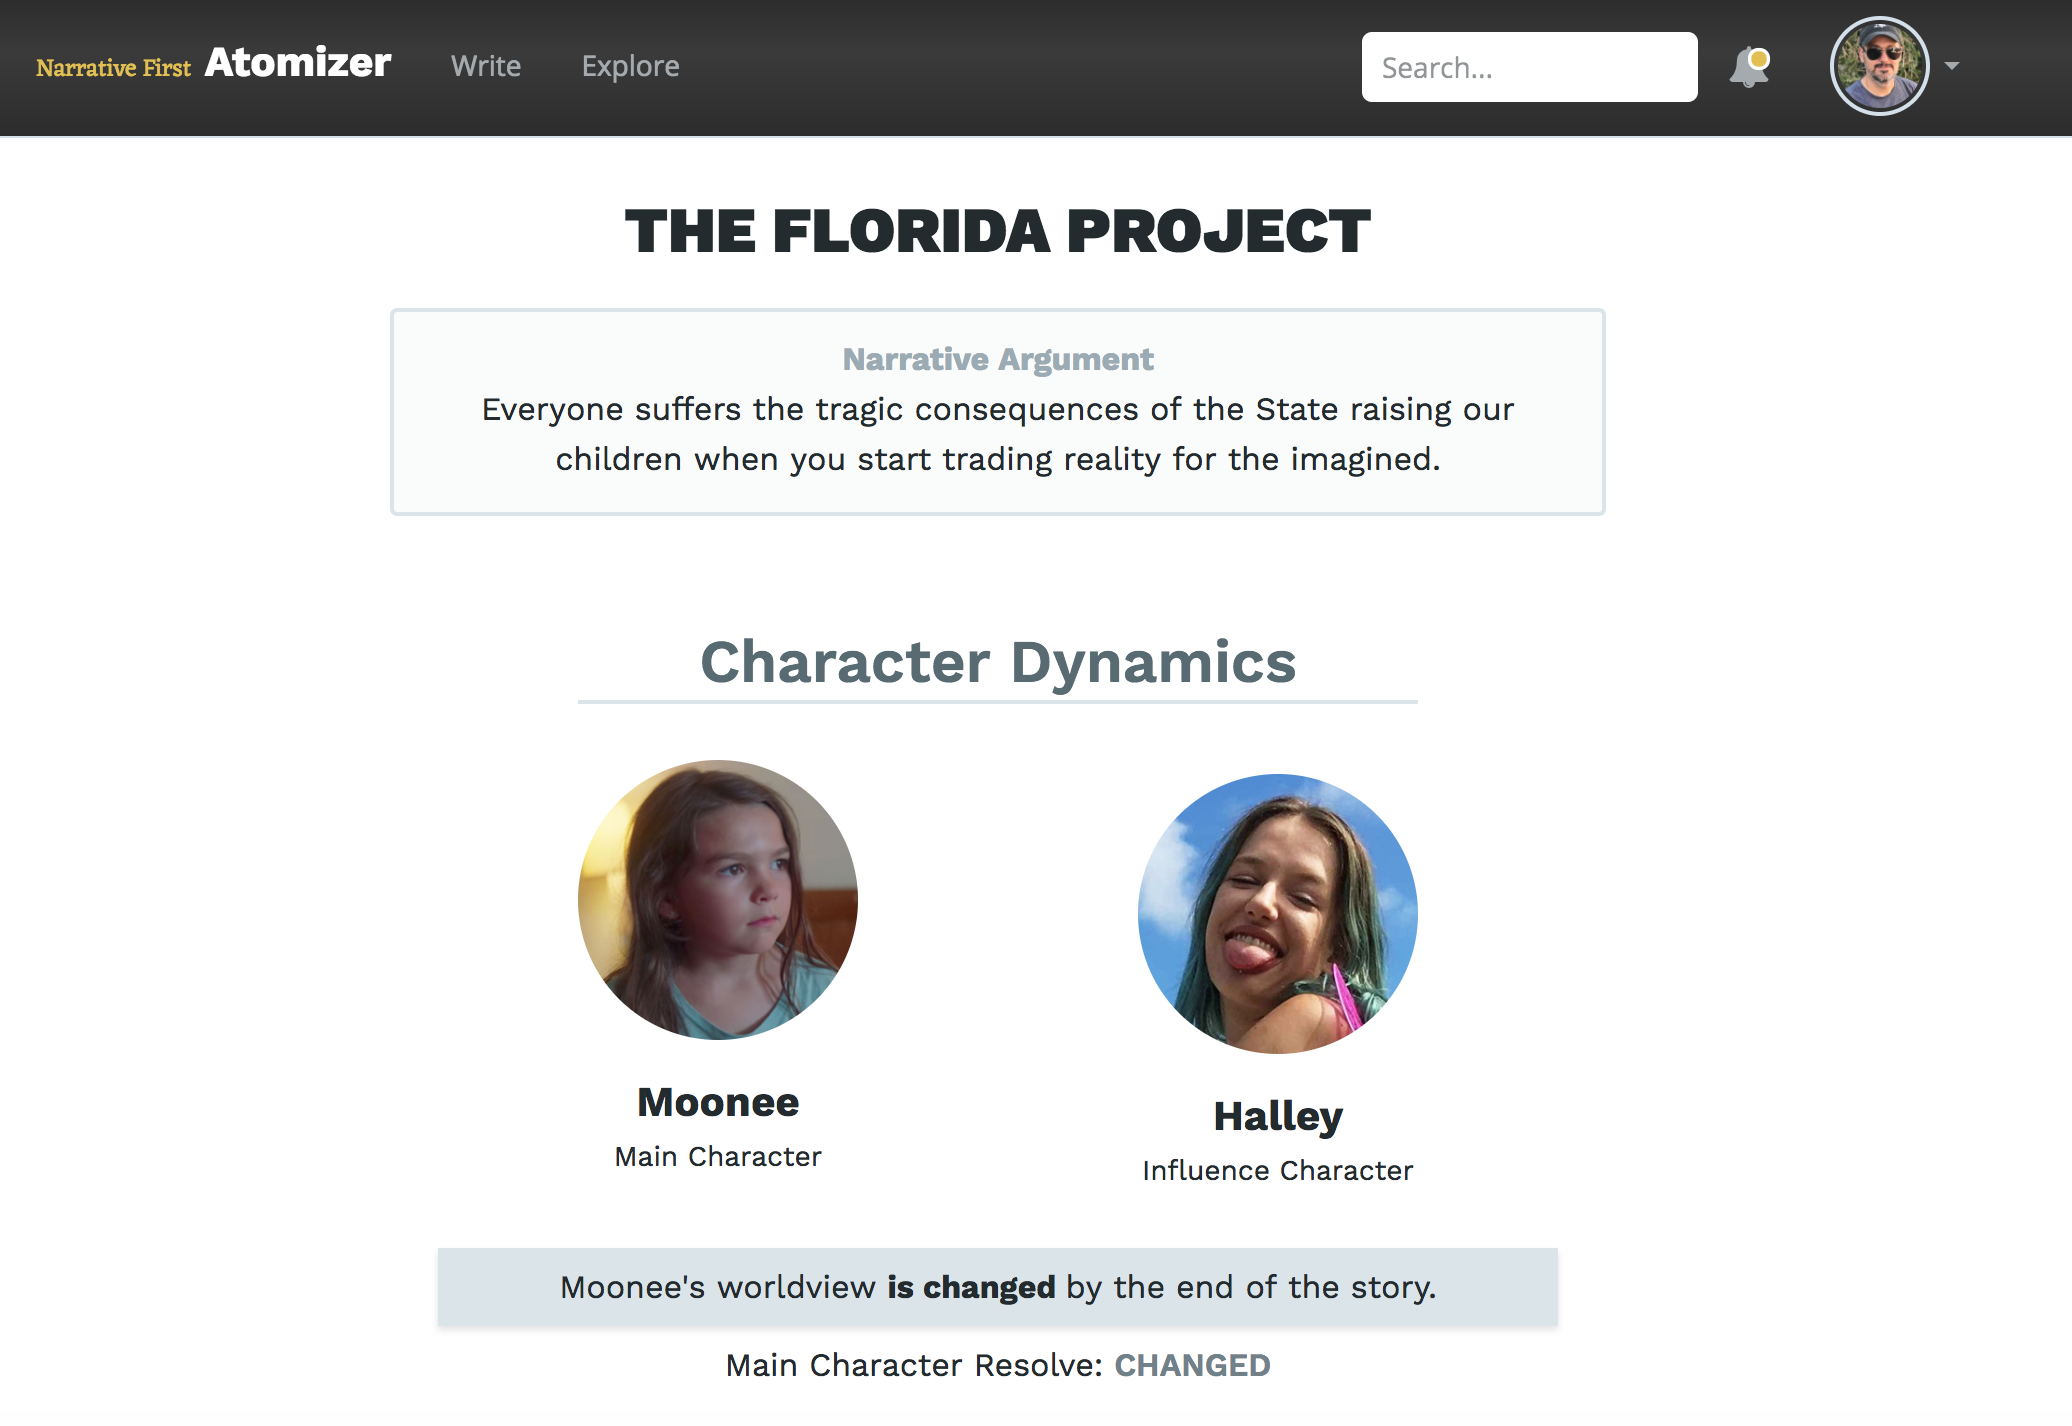 _The Florida Project_ in the Story Atomizer